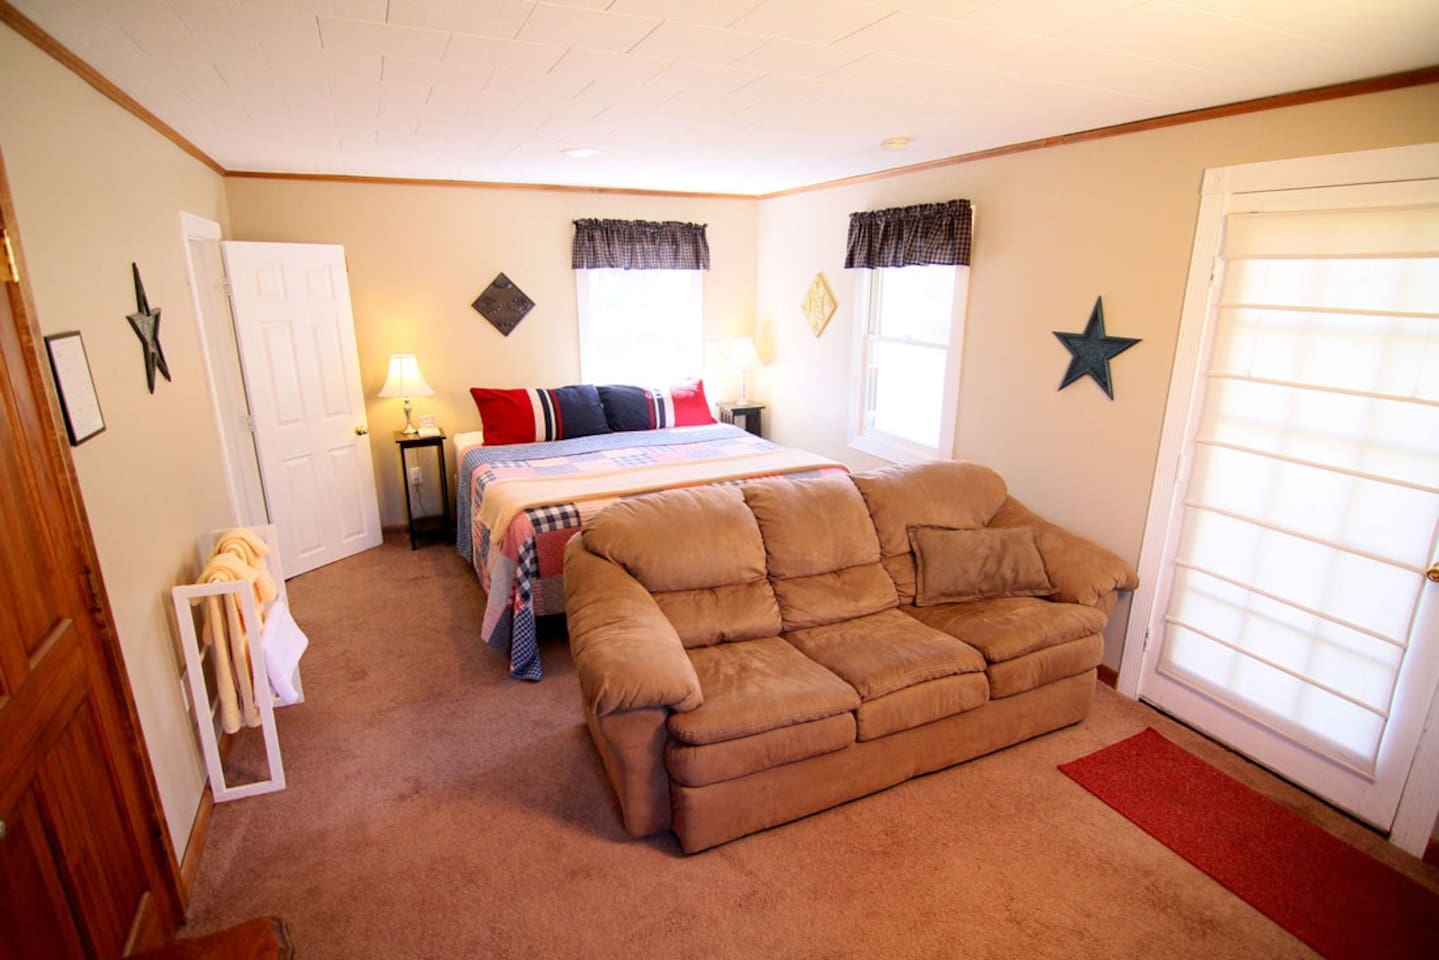 Delaware room - king bed and sofa.